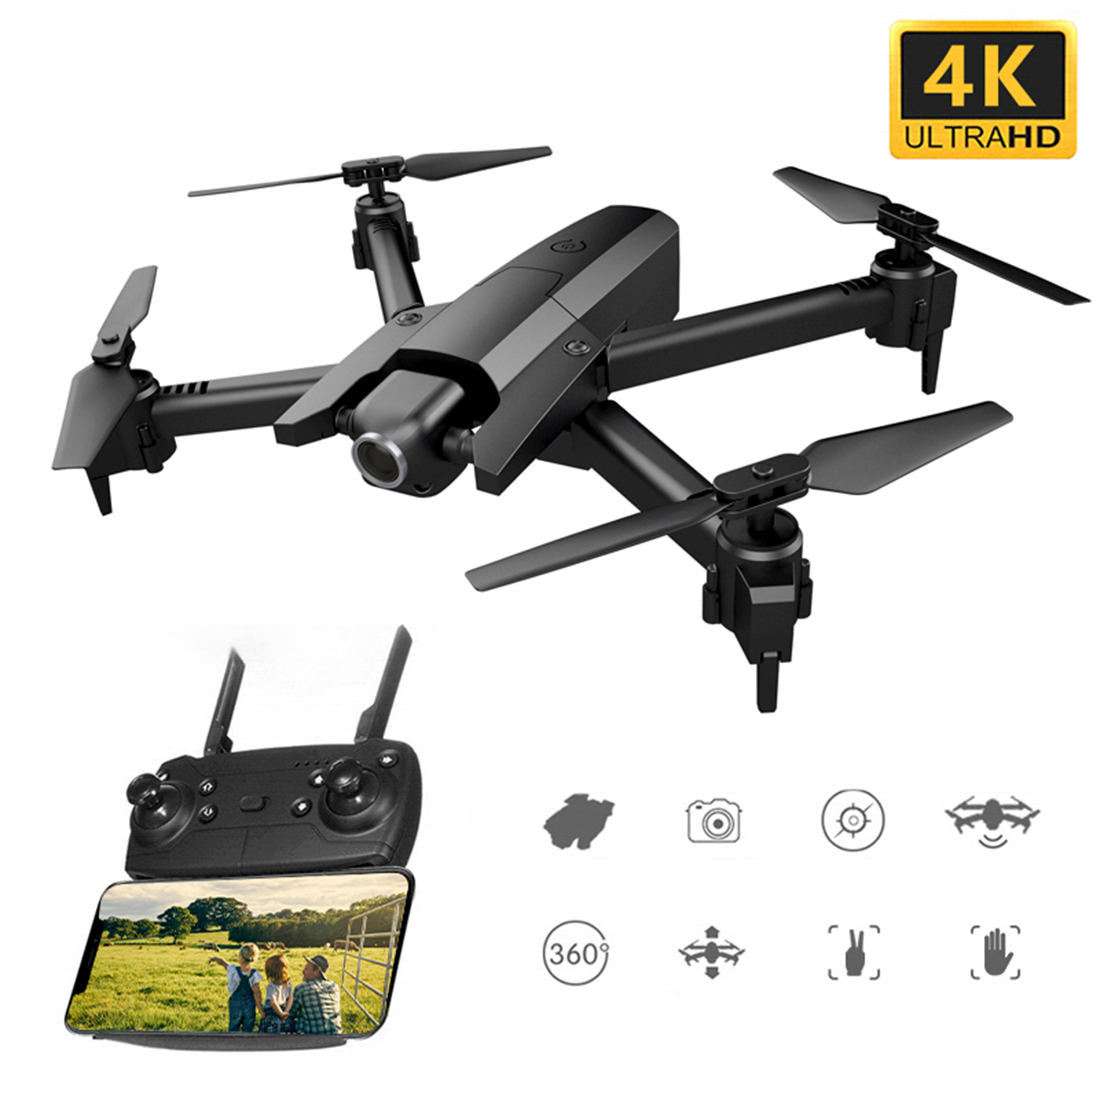 <font><b>GW106</b></font> 4K HD Dual Camera RC Quadcopter Gesture Photo Video Optical Flow Altitude Hold Foldable Drone Educational Toy Gift - Black image